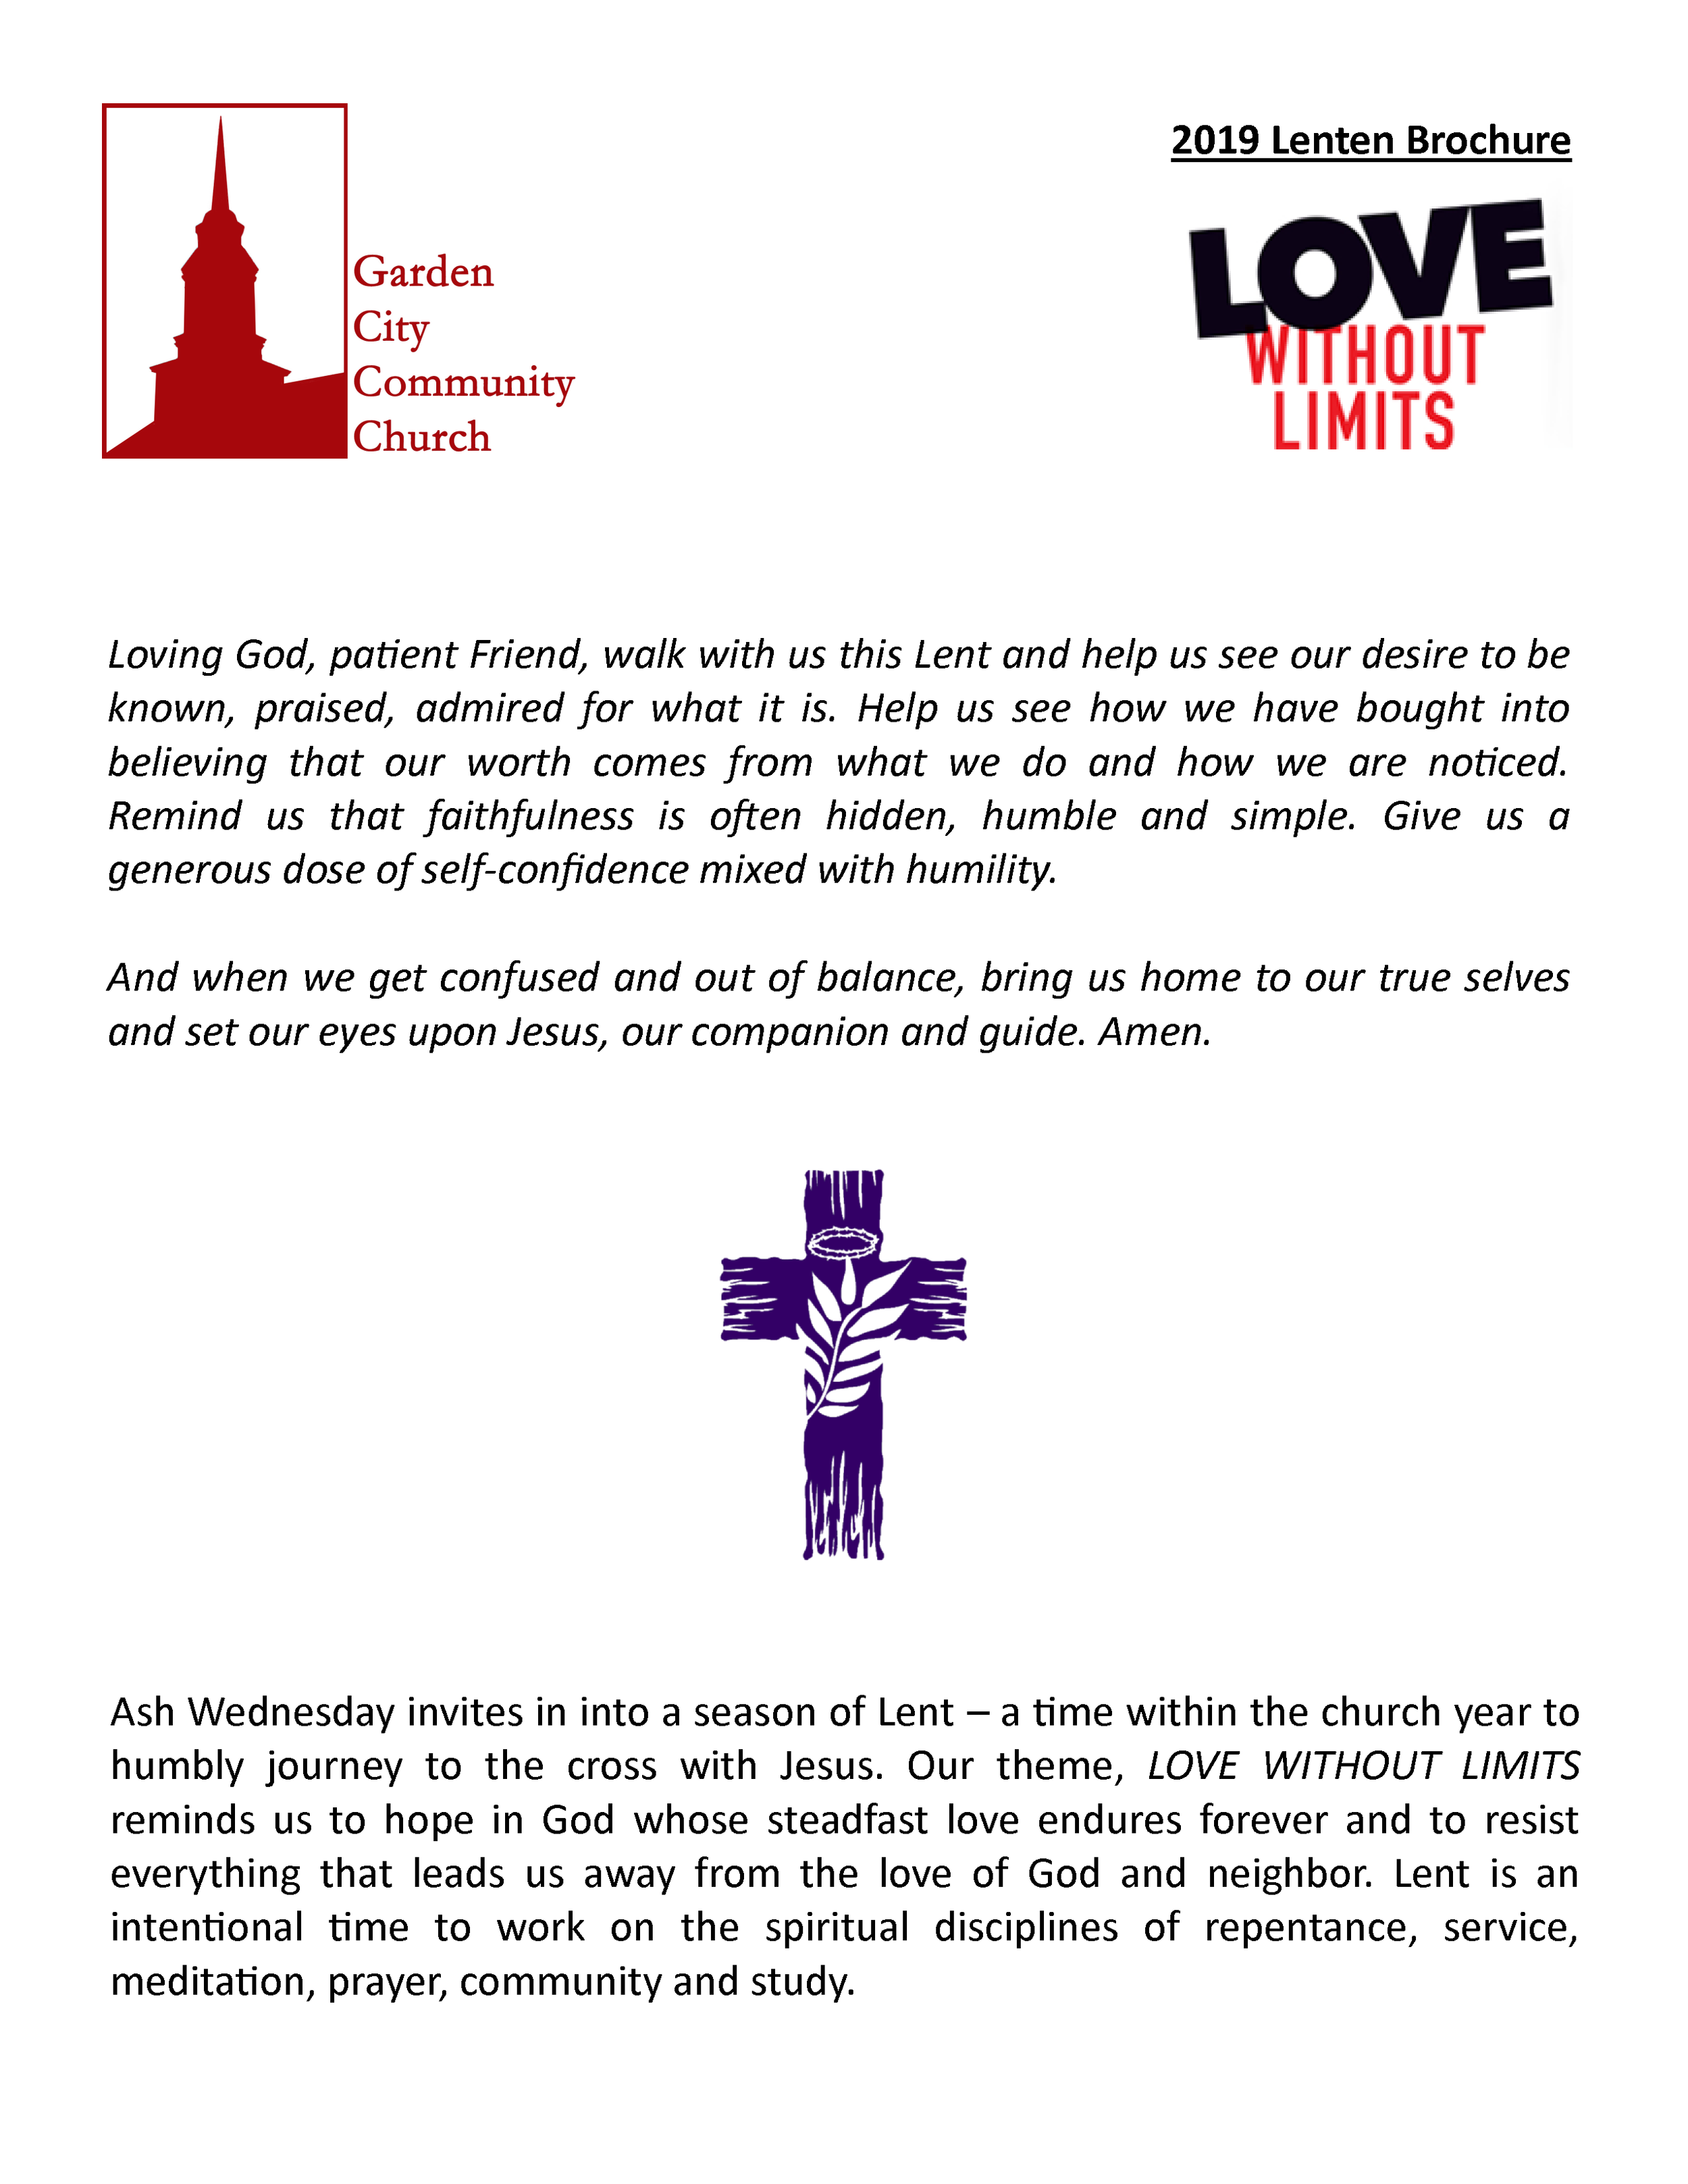 2019 Lenten Brochure - full pages for bulletin board_Page_1.png